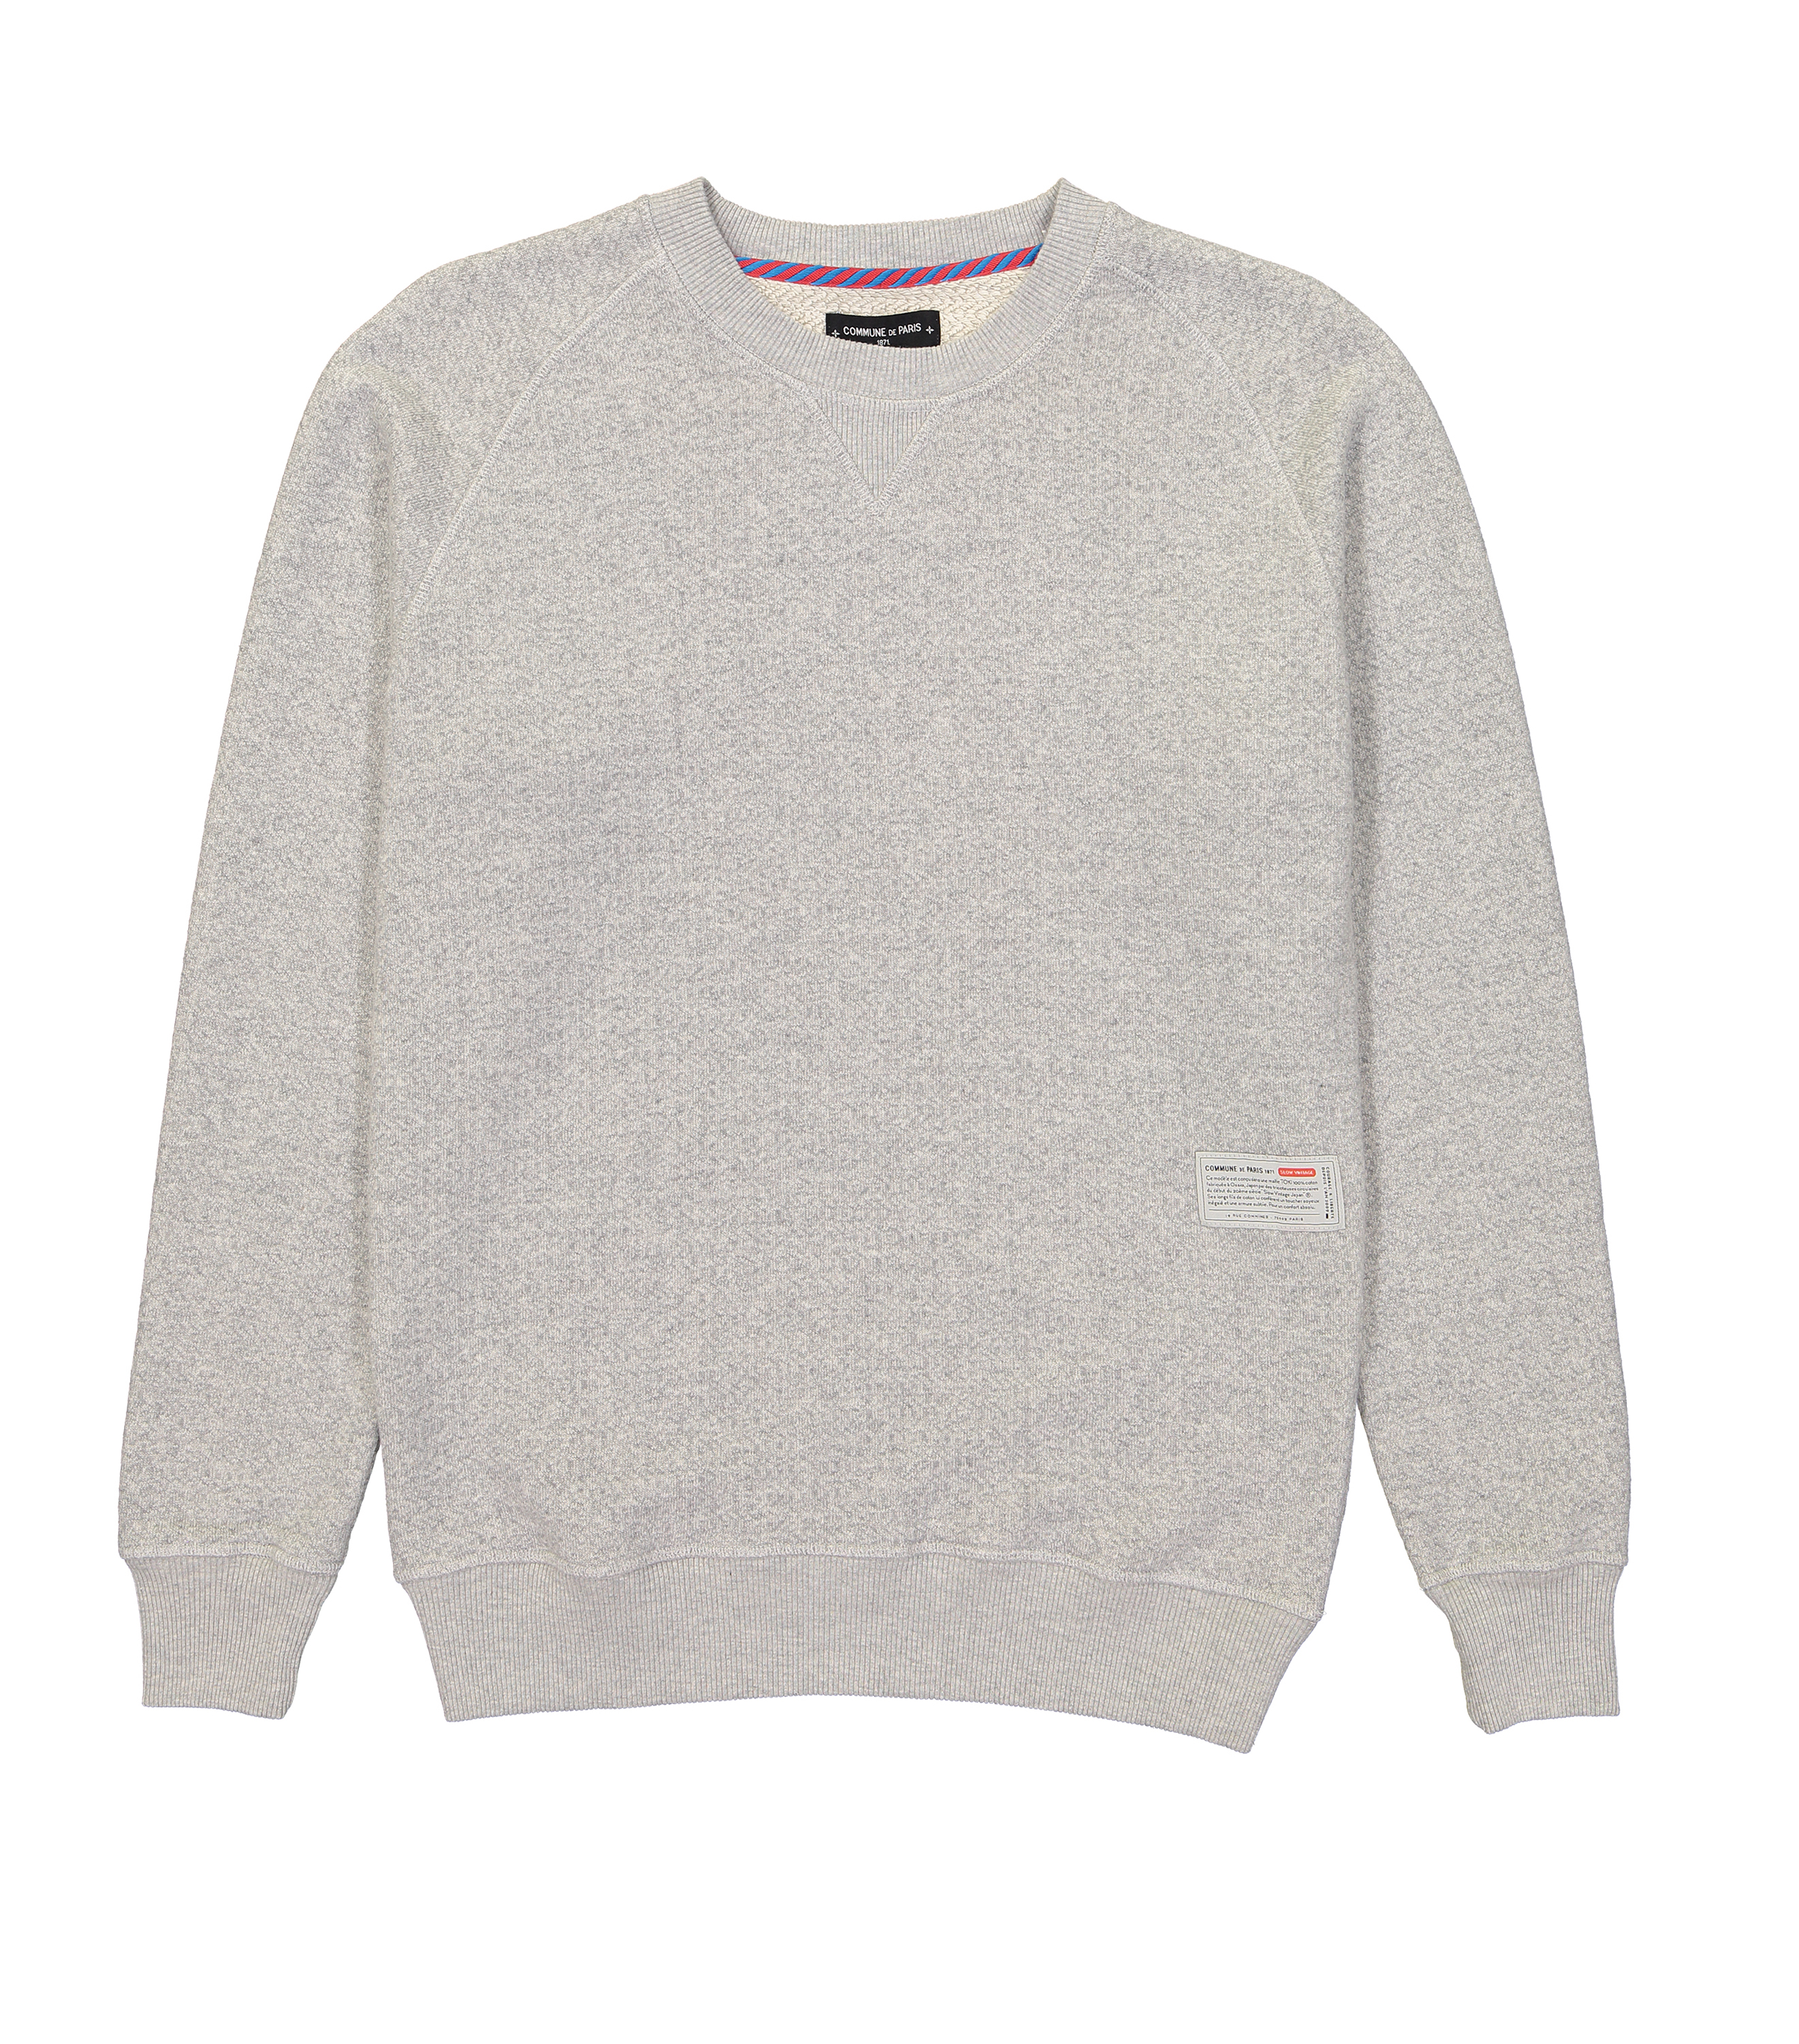 SWEAT TOKI - Marl grey